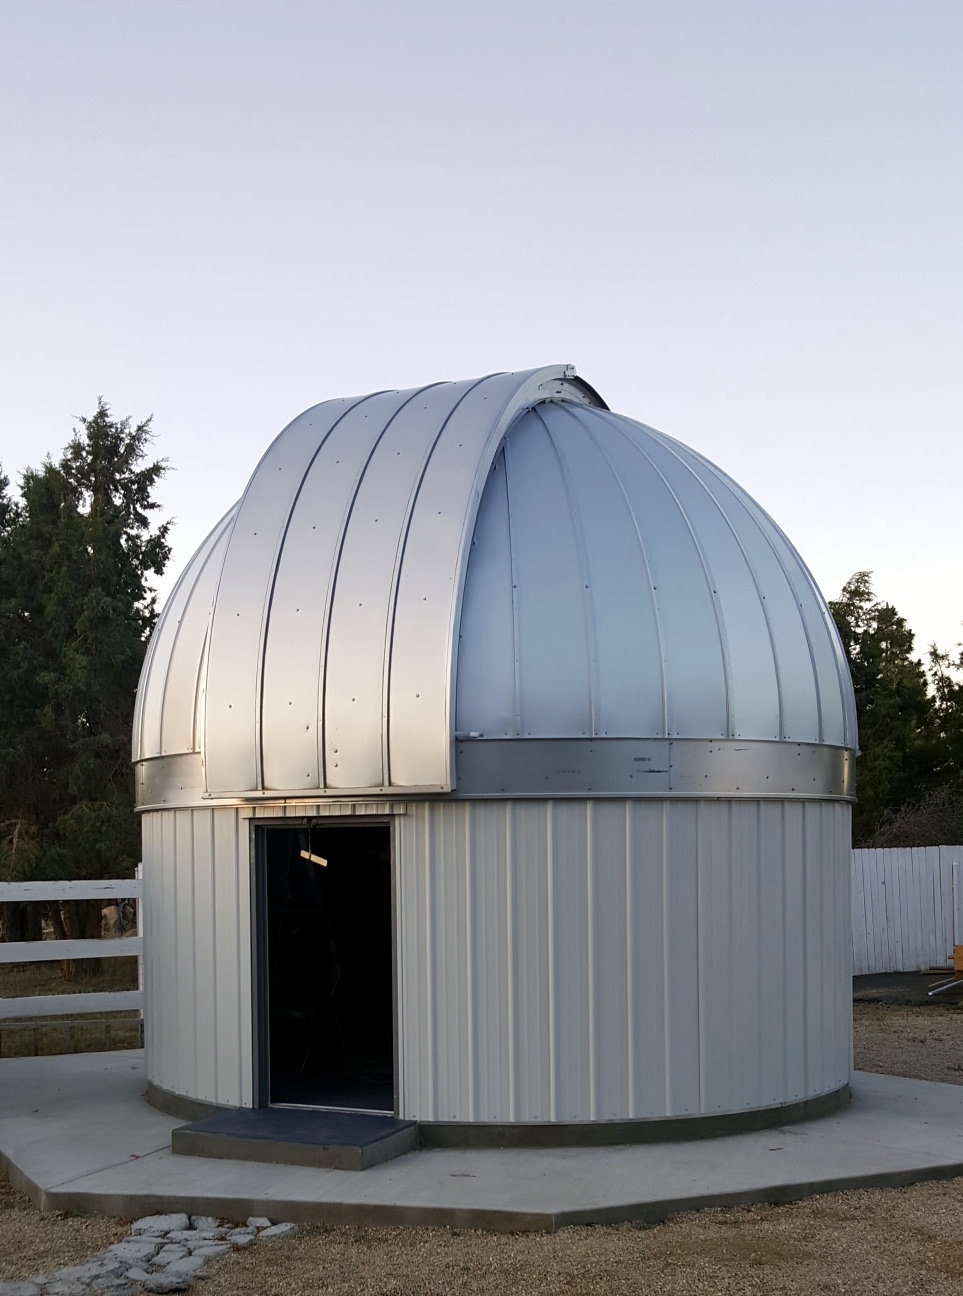 My friend's observatory high in the mountains.